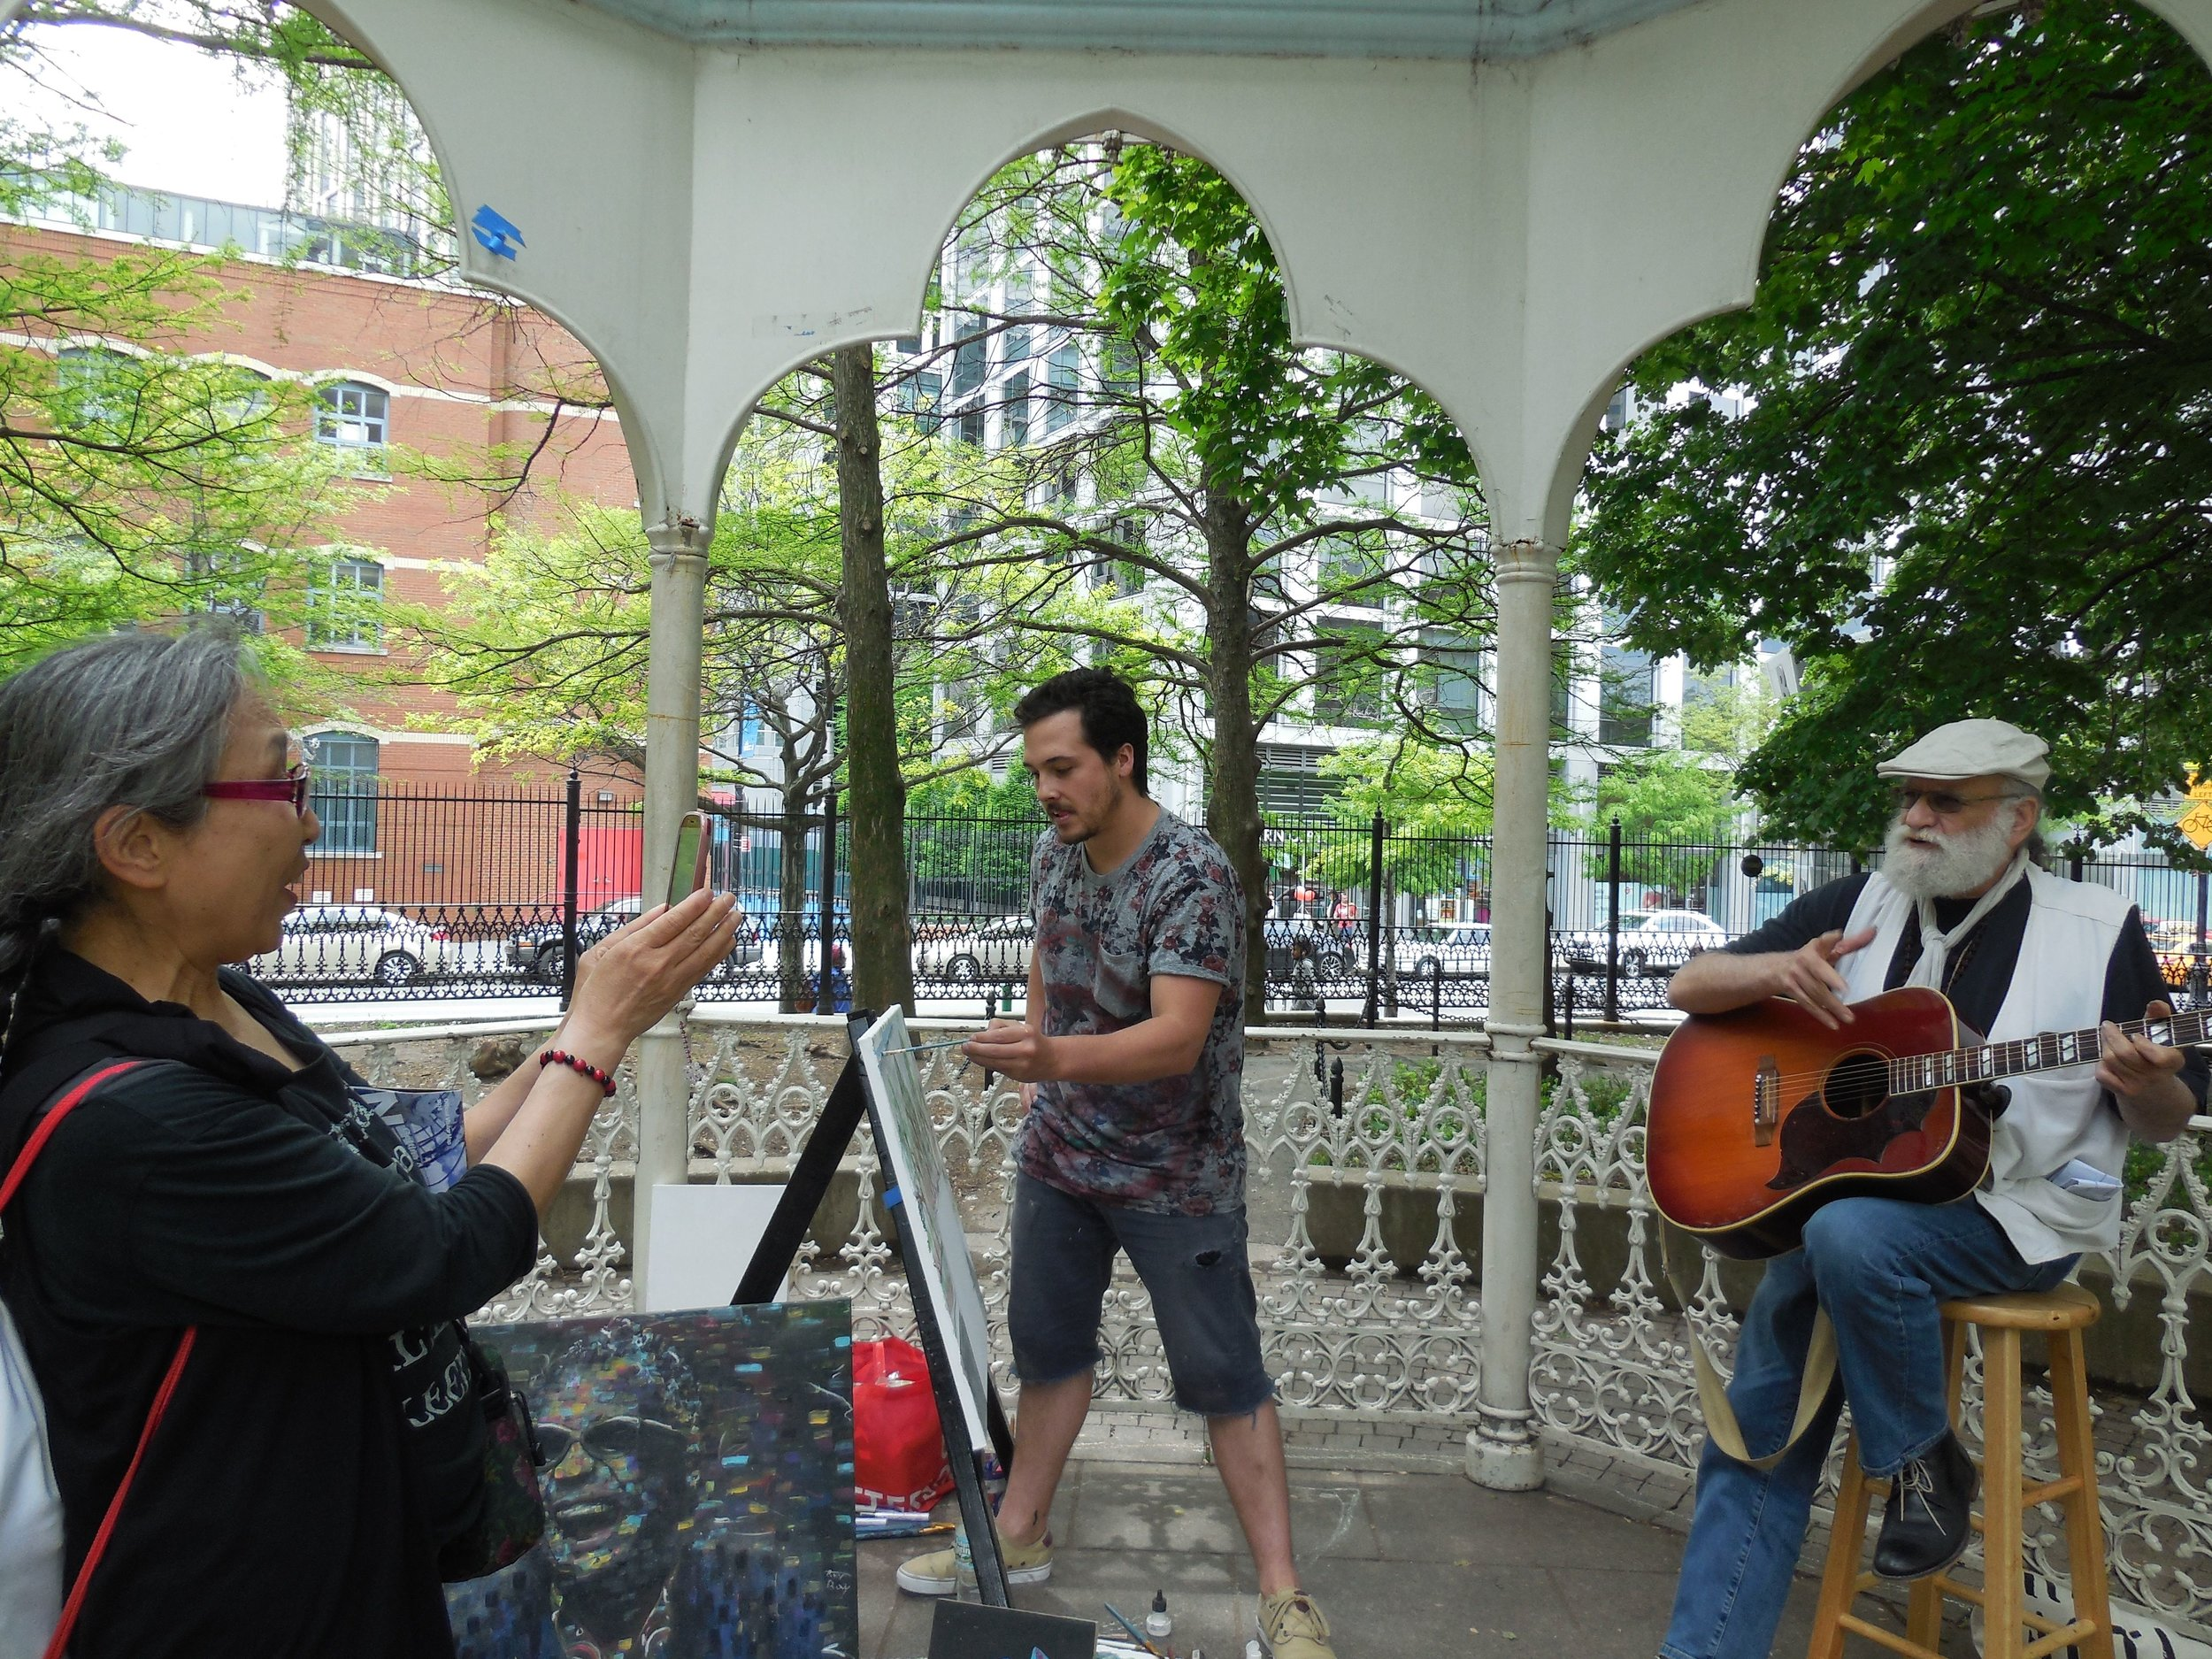 Artists In The Parks - Devon & The Legendary RT Gazebo in Washington Market Park TOAST 2016